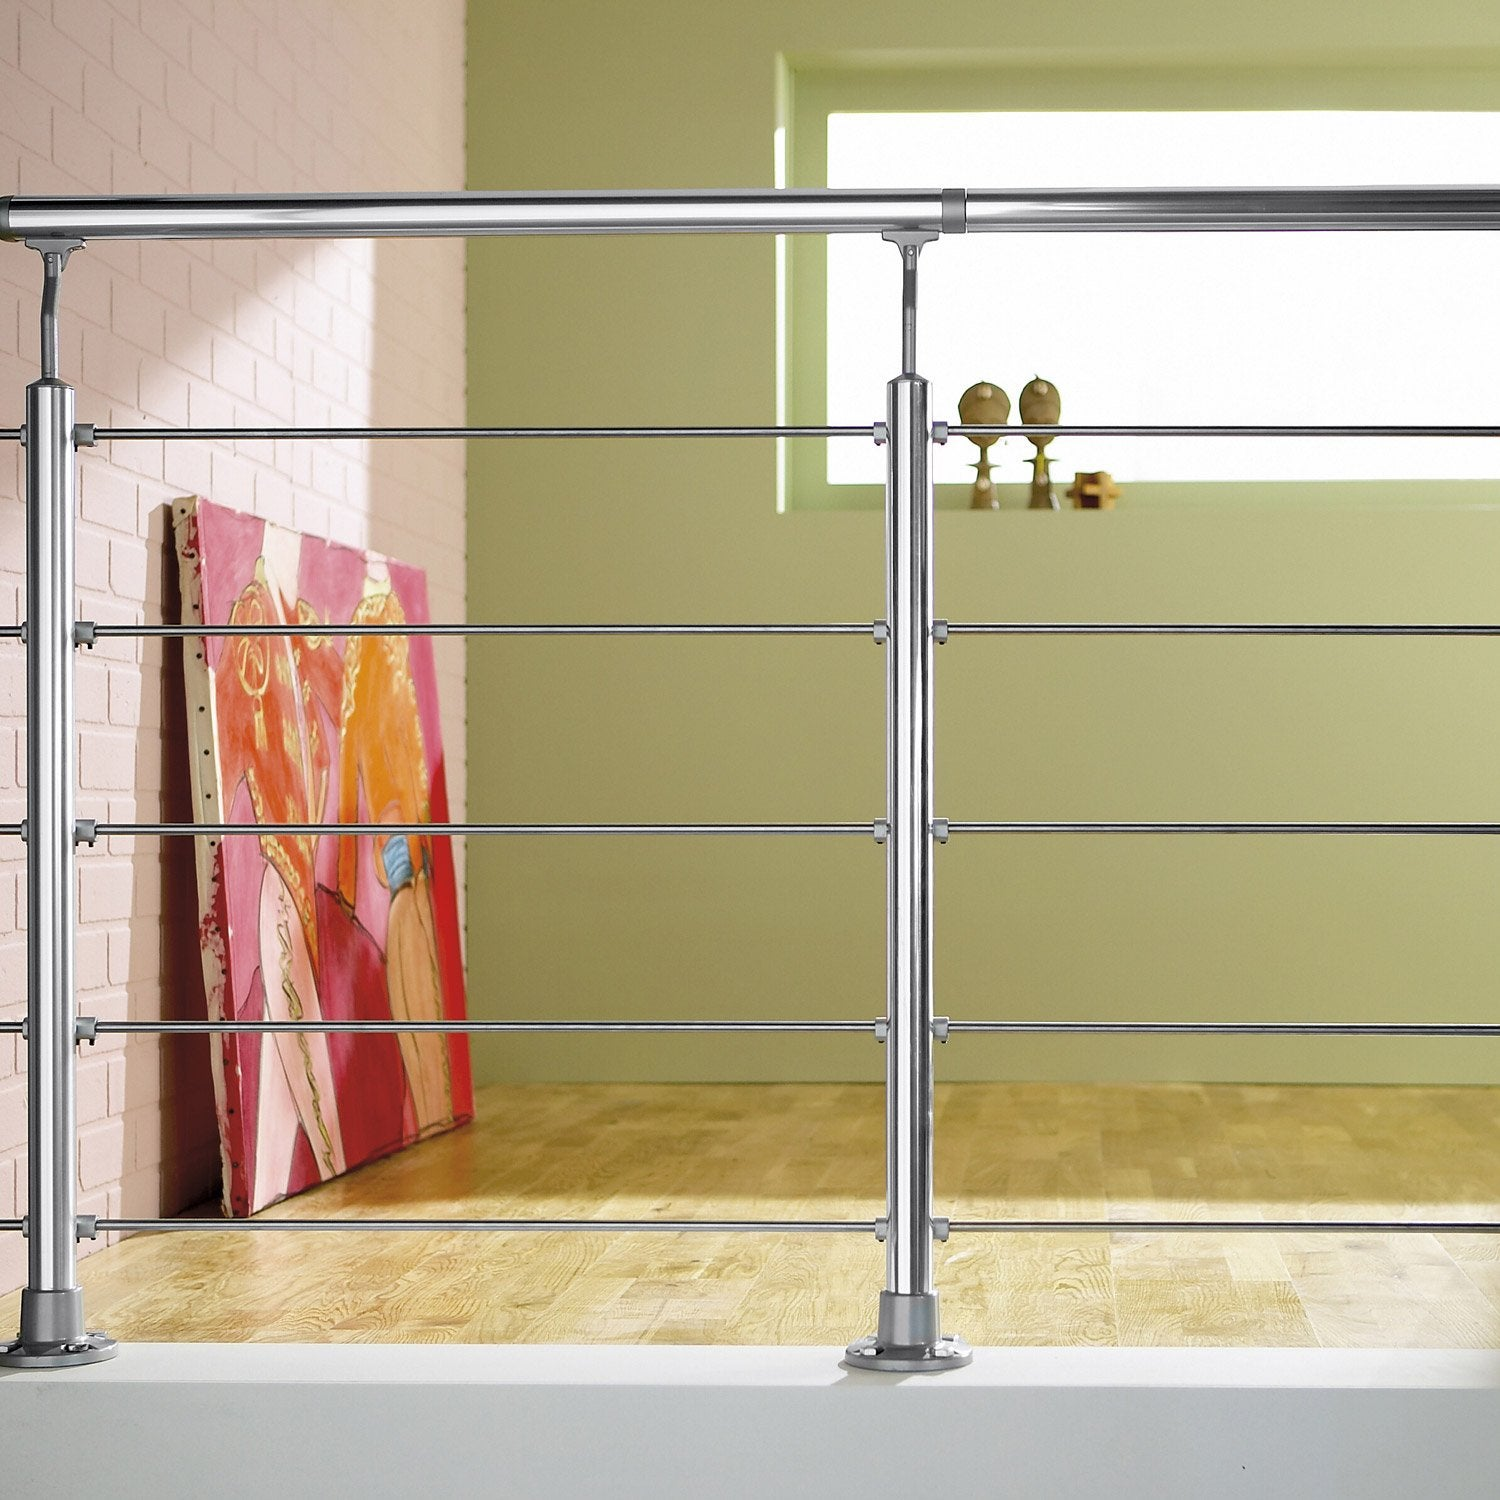 Balustrade aluminium exterieur leroy merlin mouvement for Balustrade aluminium exterieur